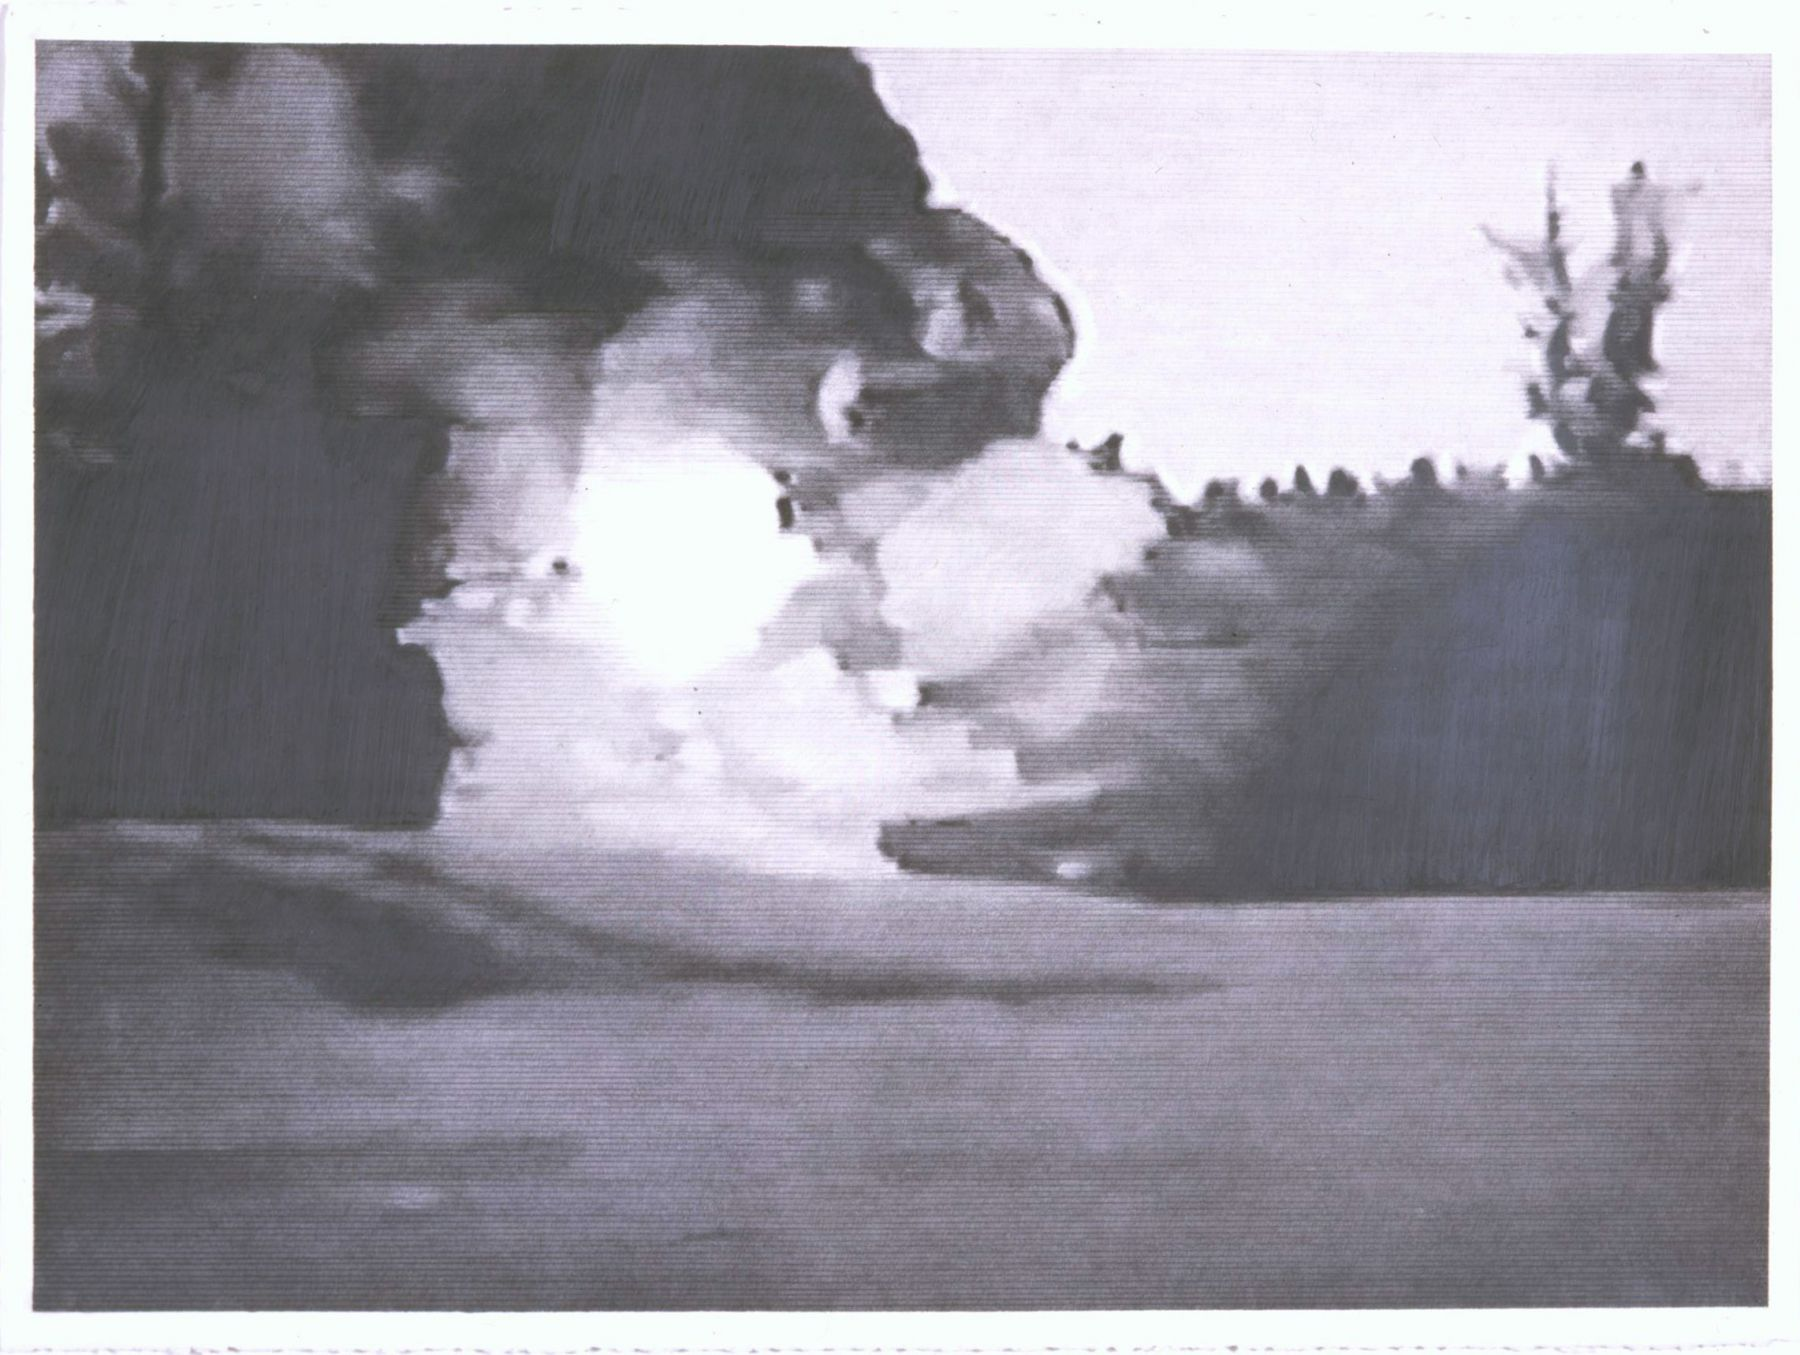 Untitled (Explosion), 2008, Graphite on paper